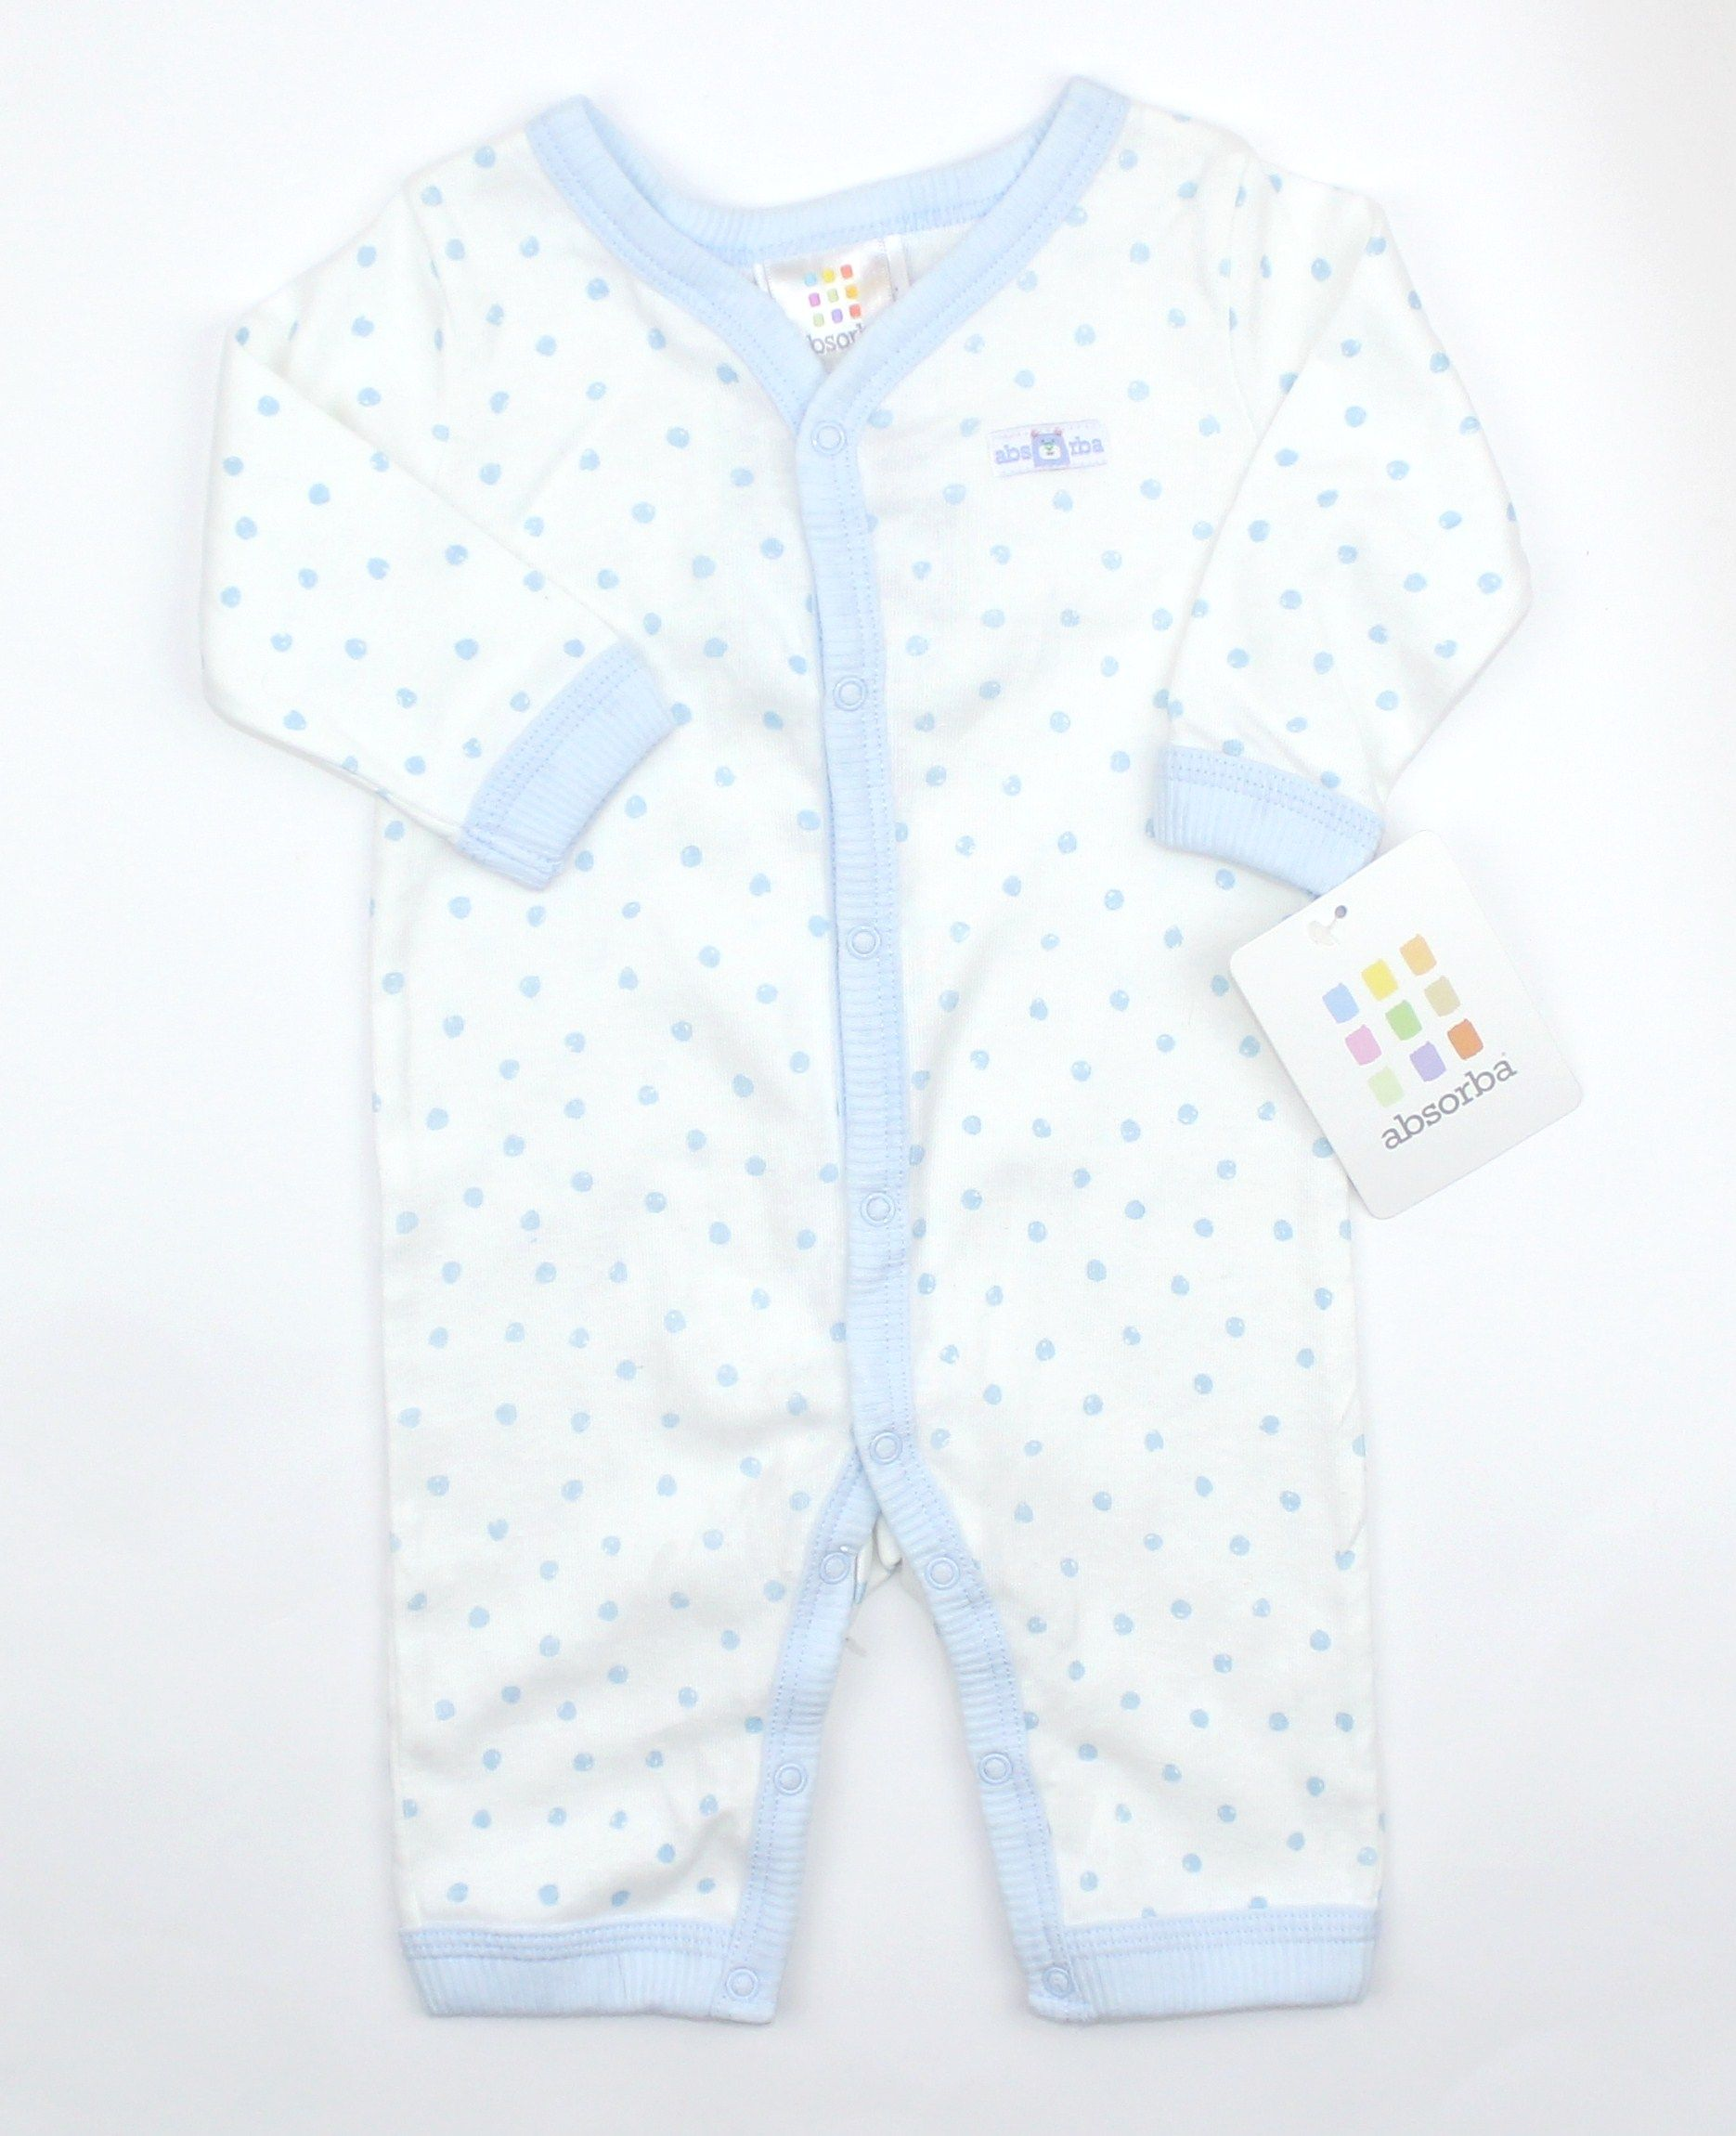 NWT Baby Boy Footless Sleeper by Absorba in Size 03